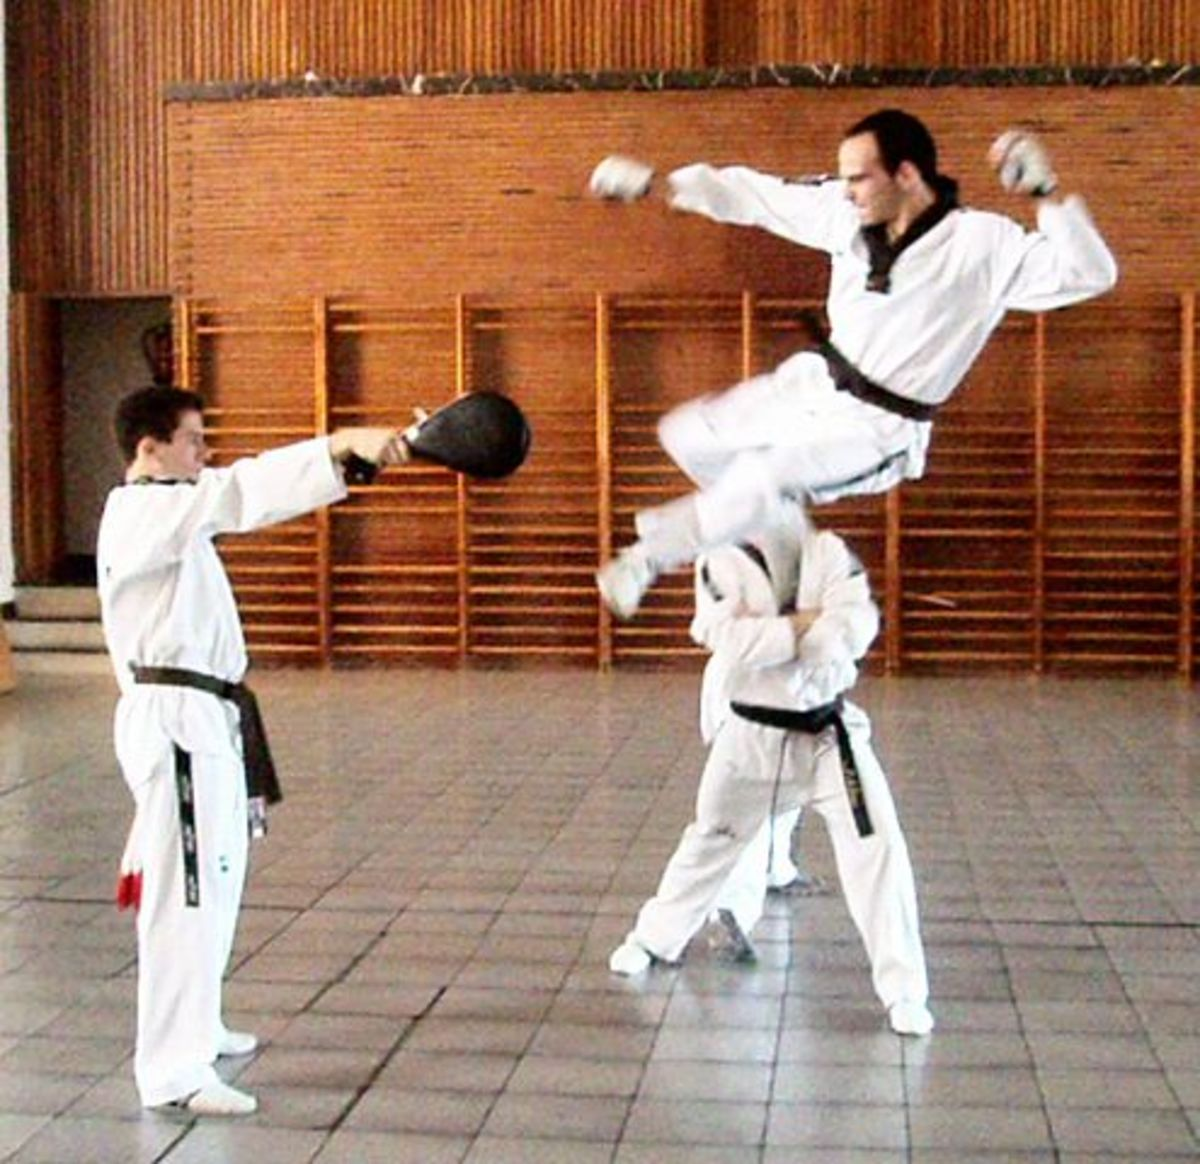 Tae Kwon Do & MMA: Effectively Applying TKD Into MMA Training